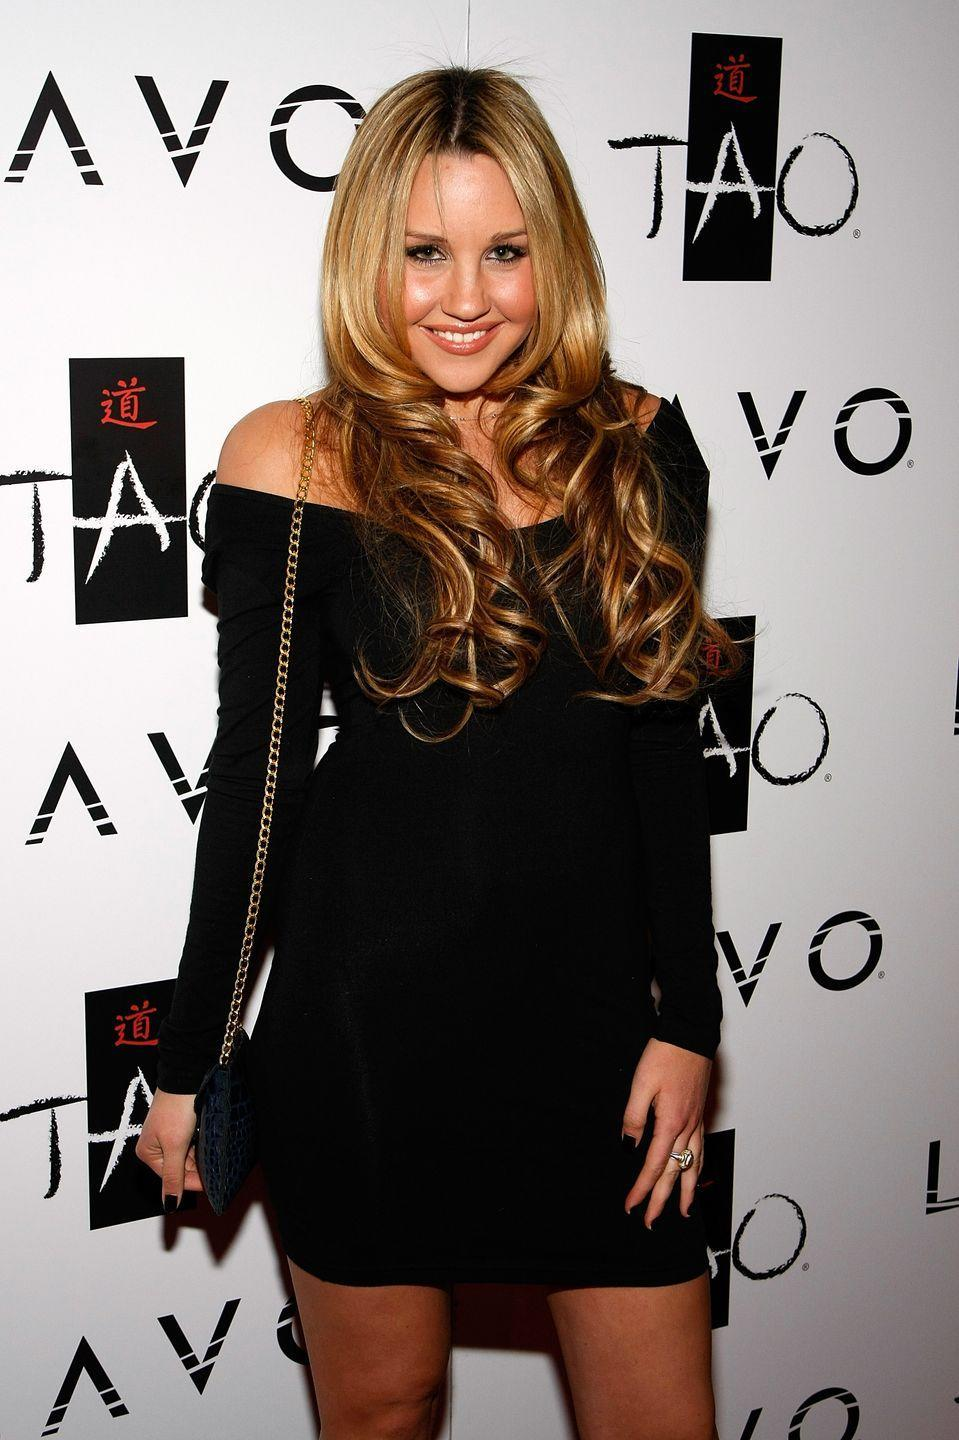 """<p>Back in 2013, the former Nickelodeon star <a href=""""https://www.huffingtonpost.com/2013/05/05/amanda-bynes-nose-job_n_3219145.html"""" rel=""""nofollow noopener"""" target=""""_blank"""" data-ylk=""""slk:revealed on Twitter"""" class=""""link rapid-noclick-resp"""">revealed on Twitter</a> that she had gotten a nose job. Though the tweets have since been deleted, the receipts are forever. </p><p>""""The reason I've asked all magazines and blogs to stop using old photos of me is I don't look like that anymore!"""" she tweeted. """"I had a nose job to remove skin that was like a webbing in between my eyes. I wasn't going to tell anyone, but I look so much prettier in my new photos that I don't want old photos used anymore!""""</p>"""